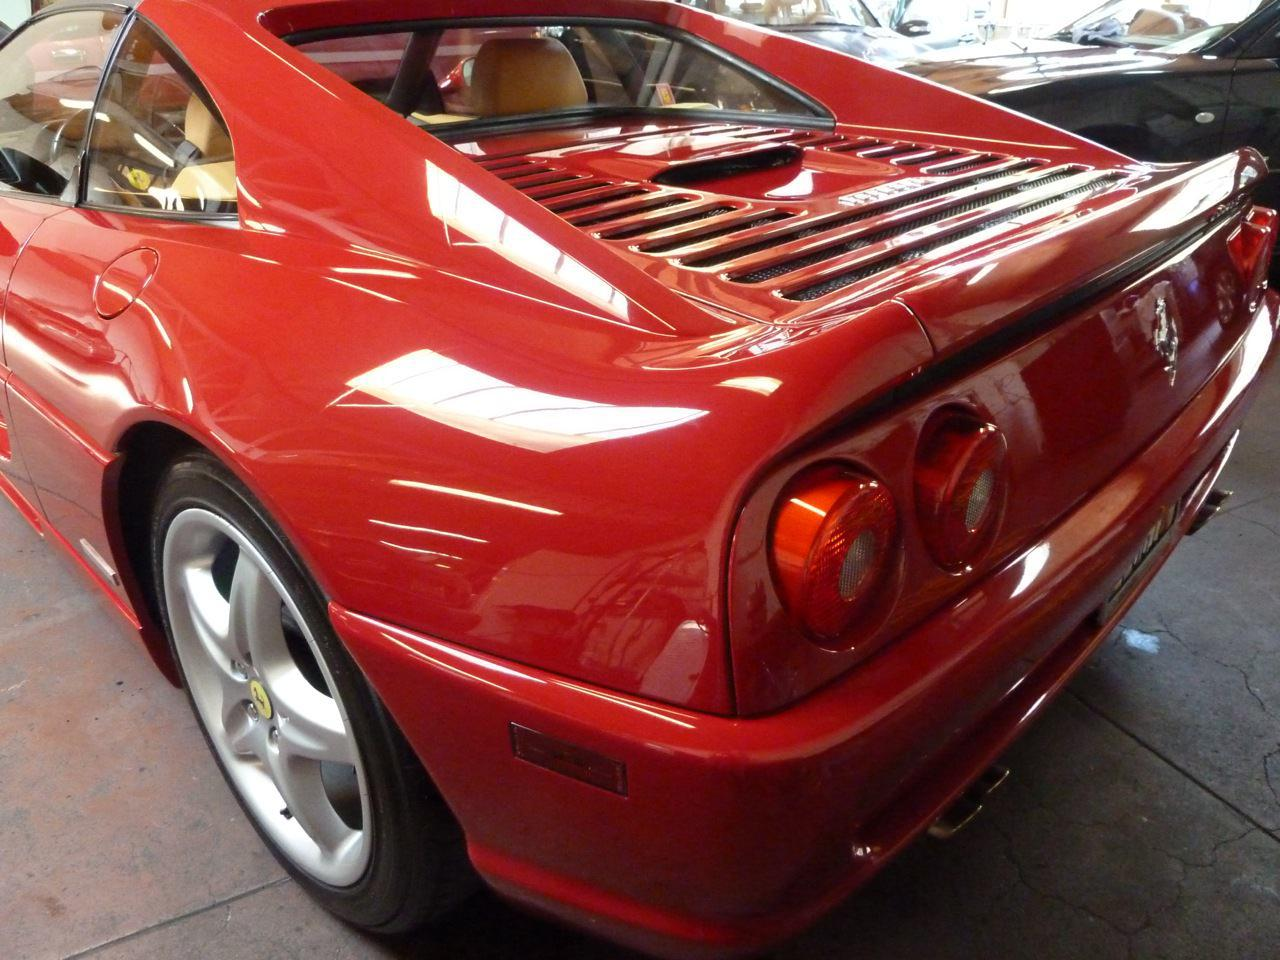 Auto Detailing San Francisco Gallery Sf 46